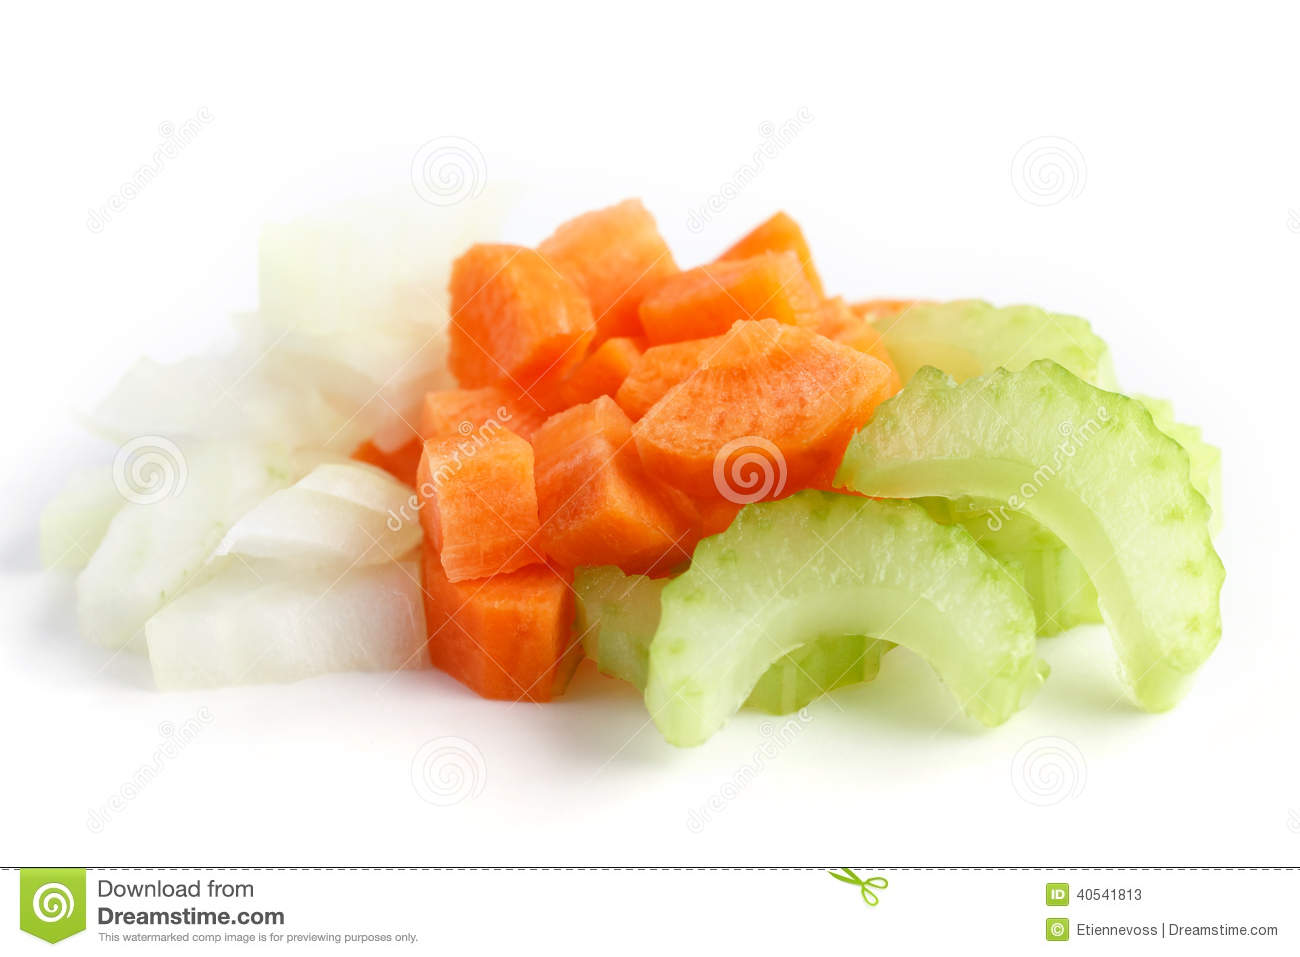 Classic Mix Of Carrots Celery And Onion All Chopped Up And Ready To